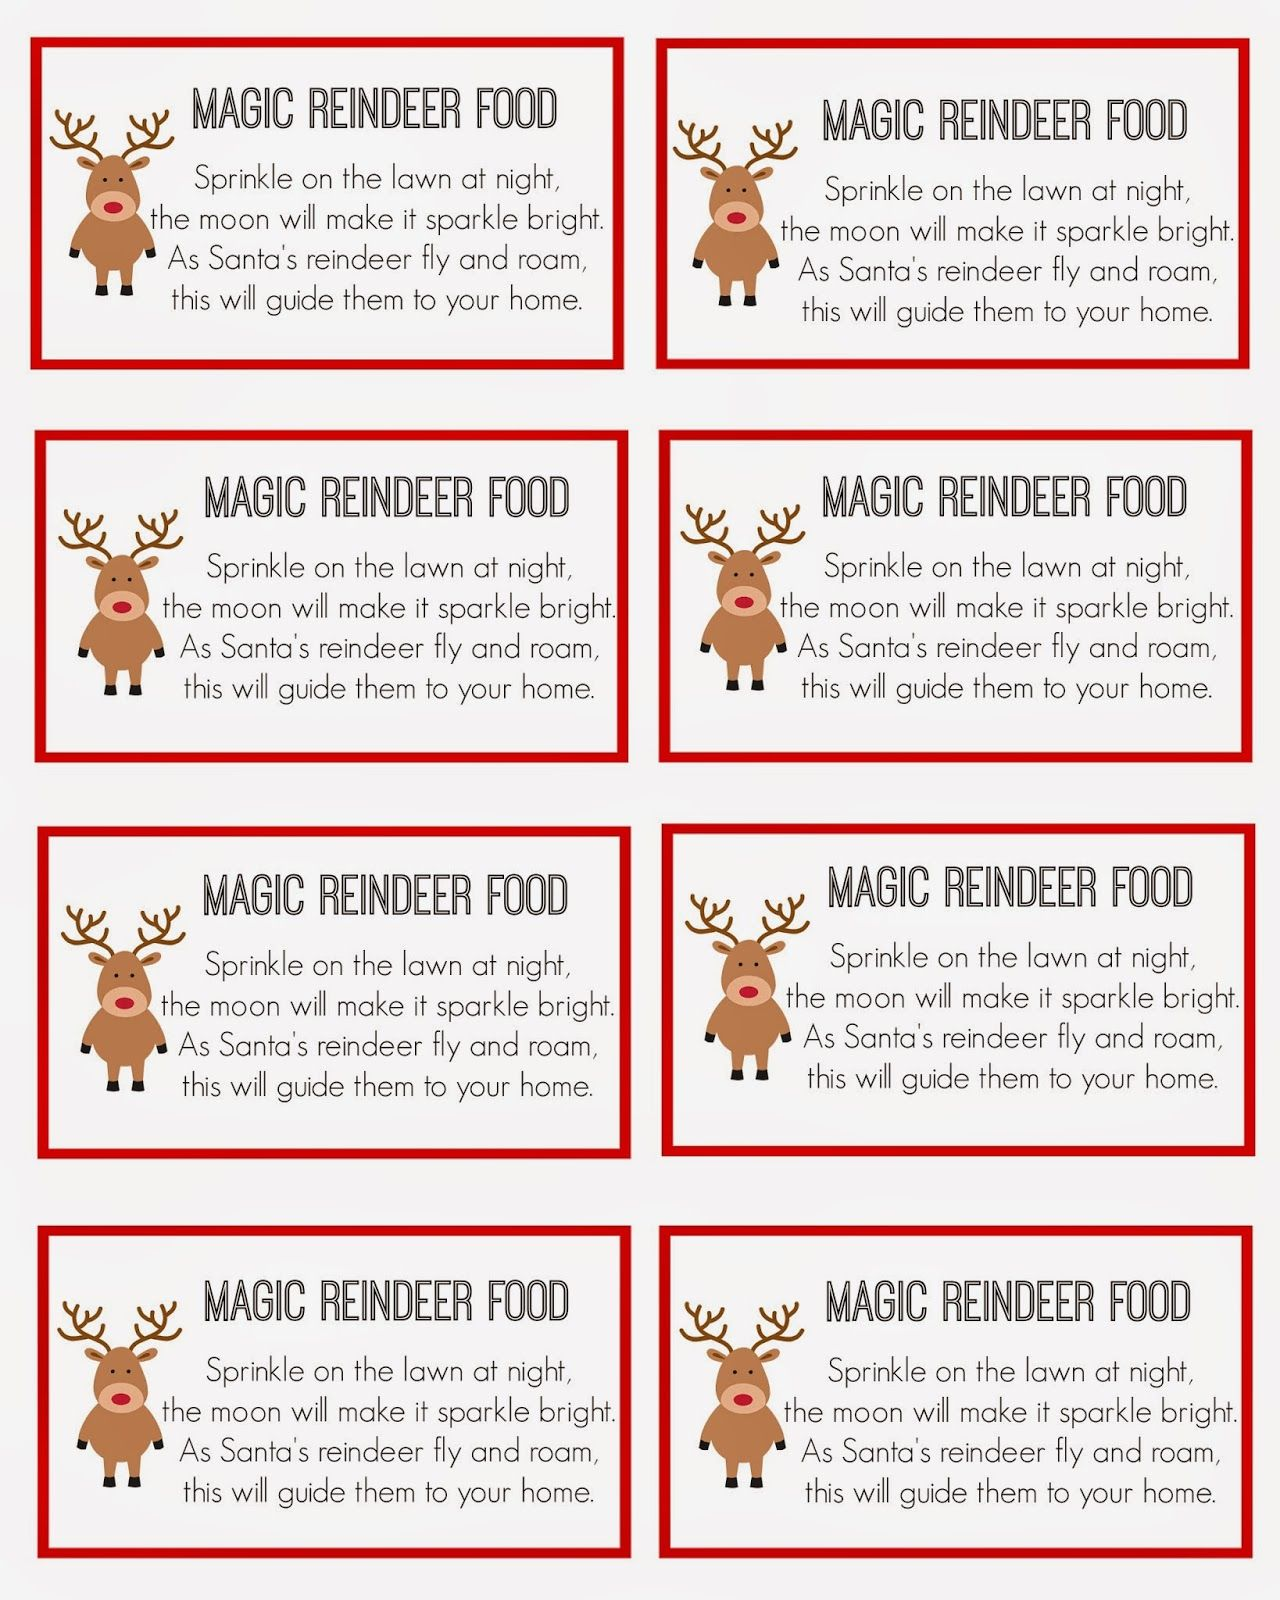 photo relating to Reindeer Food Labels Printable identify Magic Reindeer Meals Xmas Magic reindeer meals